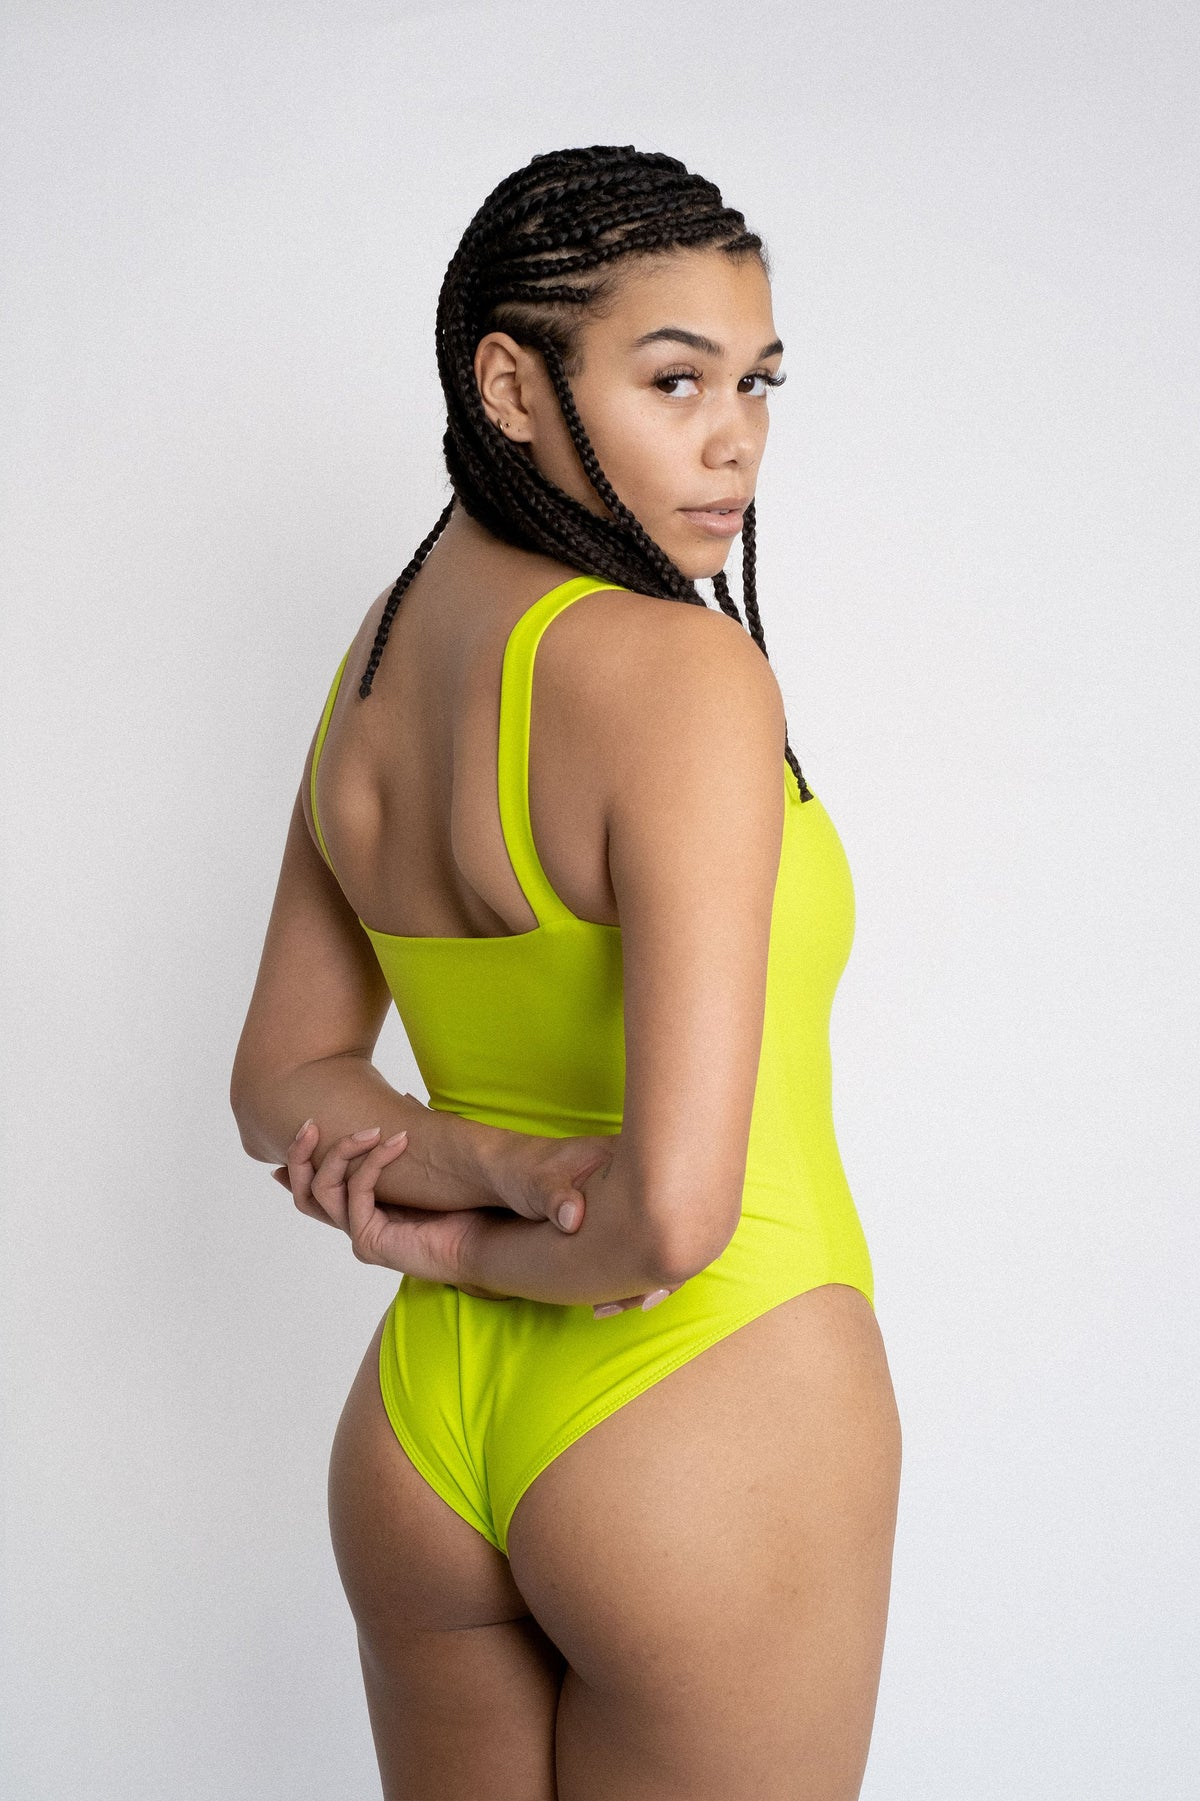 The back of a woman looking over her shoulder with her hands crossed behind her wearing a neon green one piece swimsuit with minimal coverage.